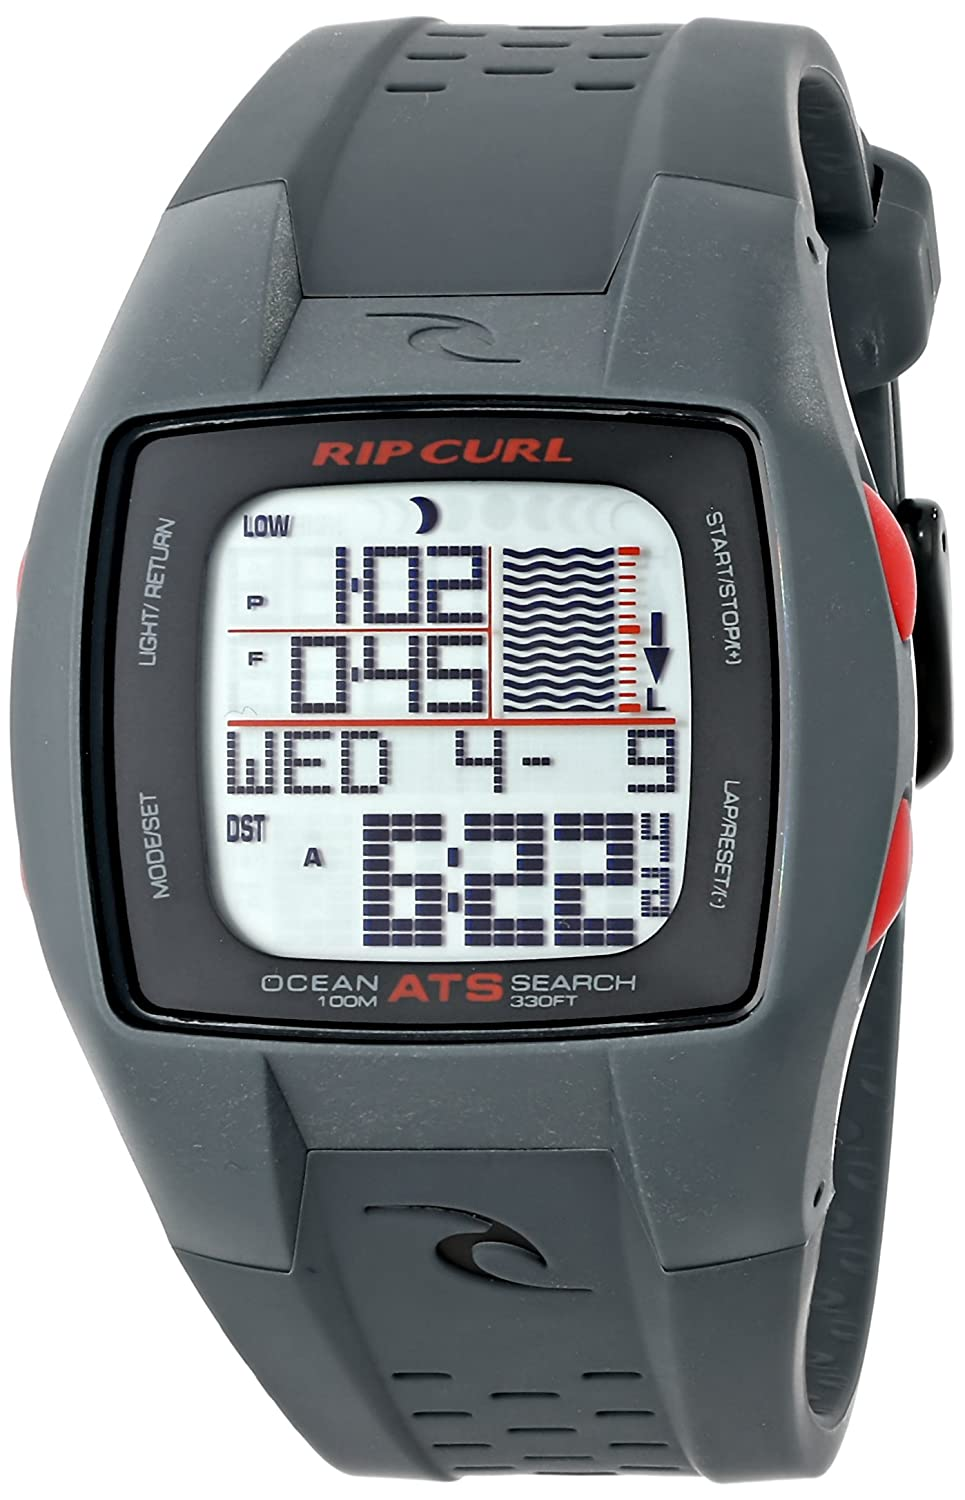 Rip Curl Men's A1015 Trestles Oceansearch Surf Watch with Grey Band 1 pcs ramps1 4 lcd 12864 control panel 3d printer smart controller lcd display free shipping drop shipping l101